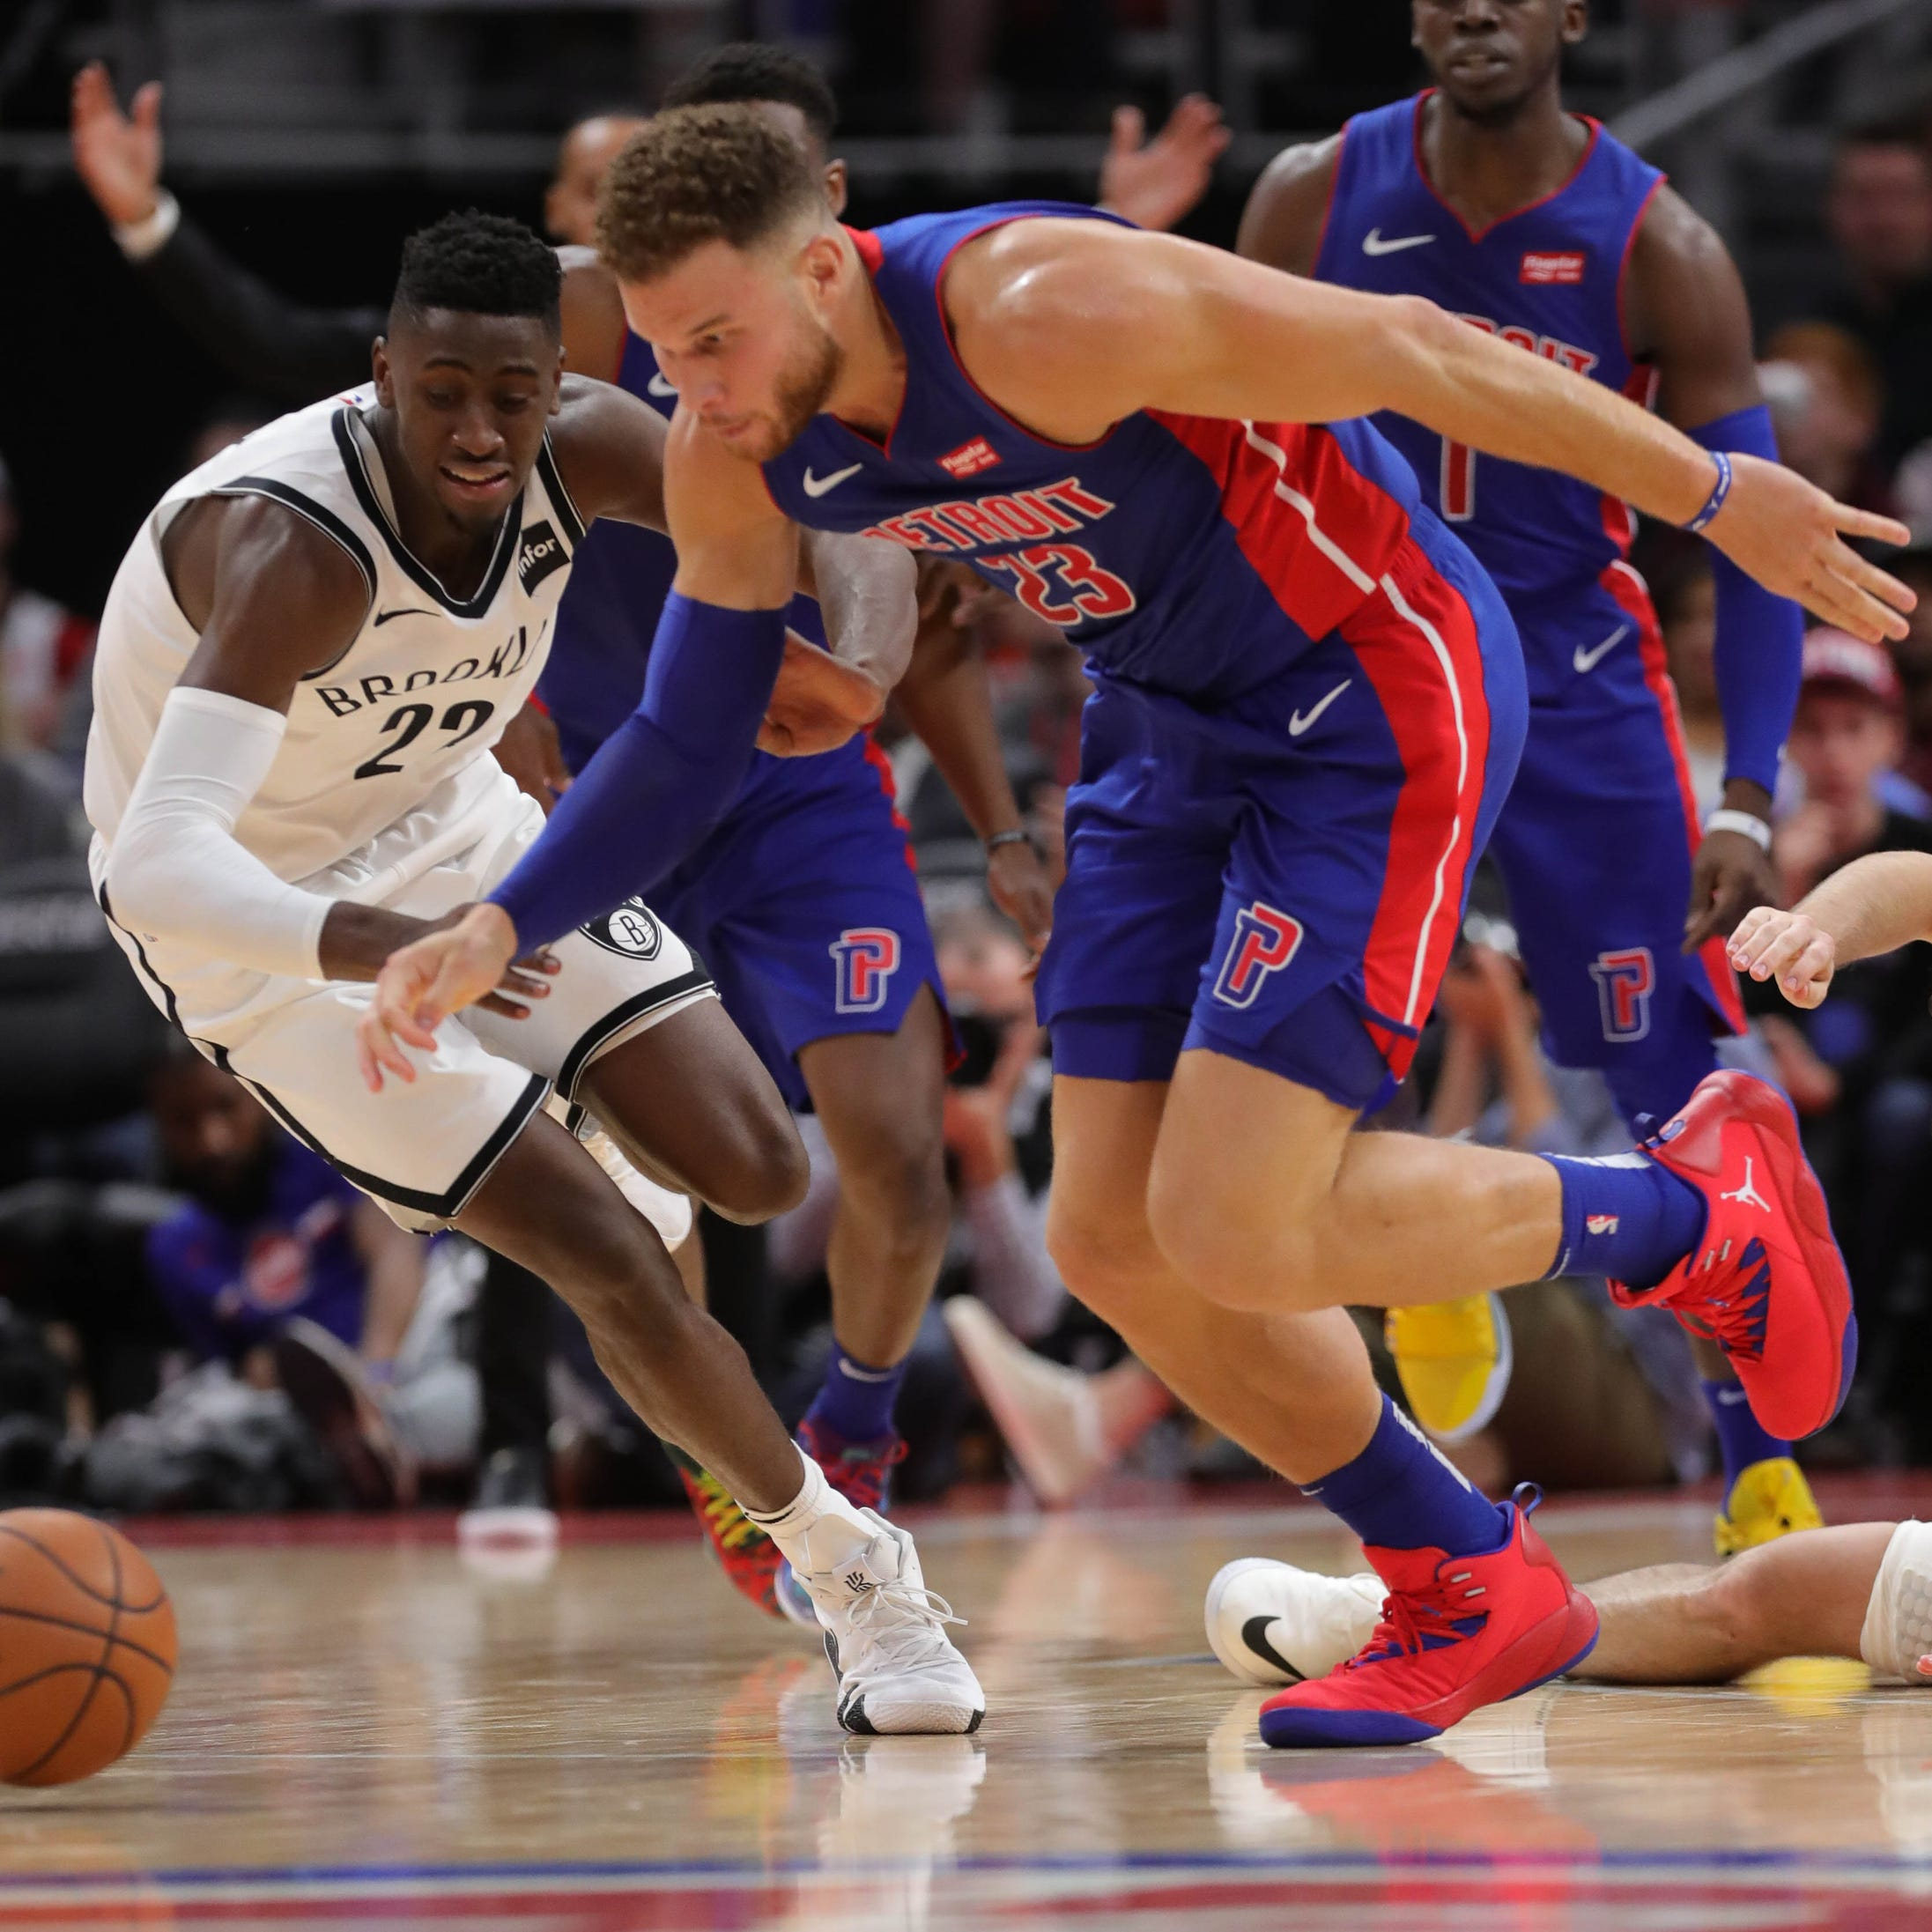 Detroit Pistons show some promise - and warts - in season-opening win